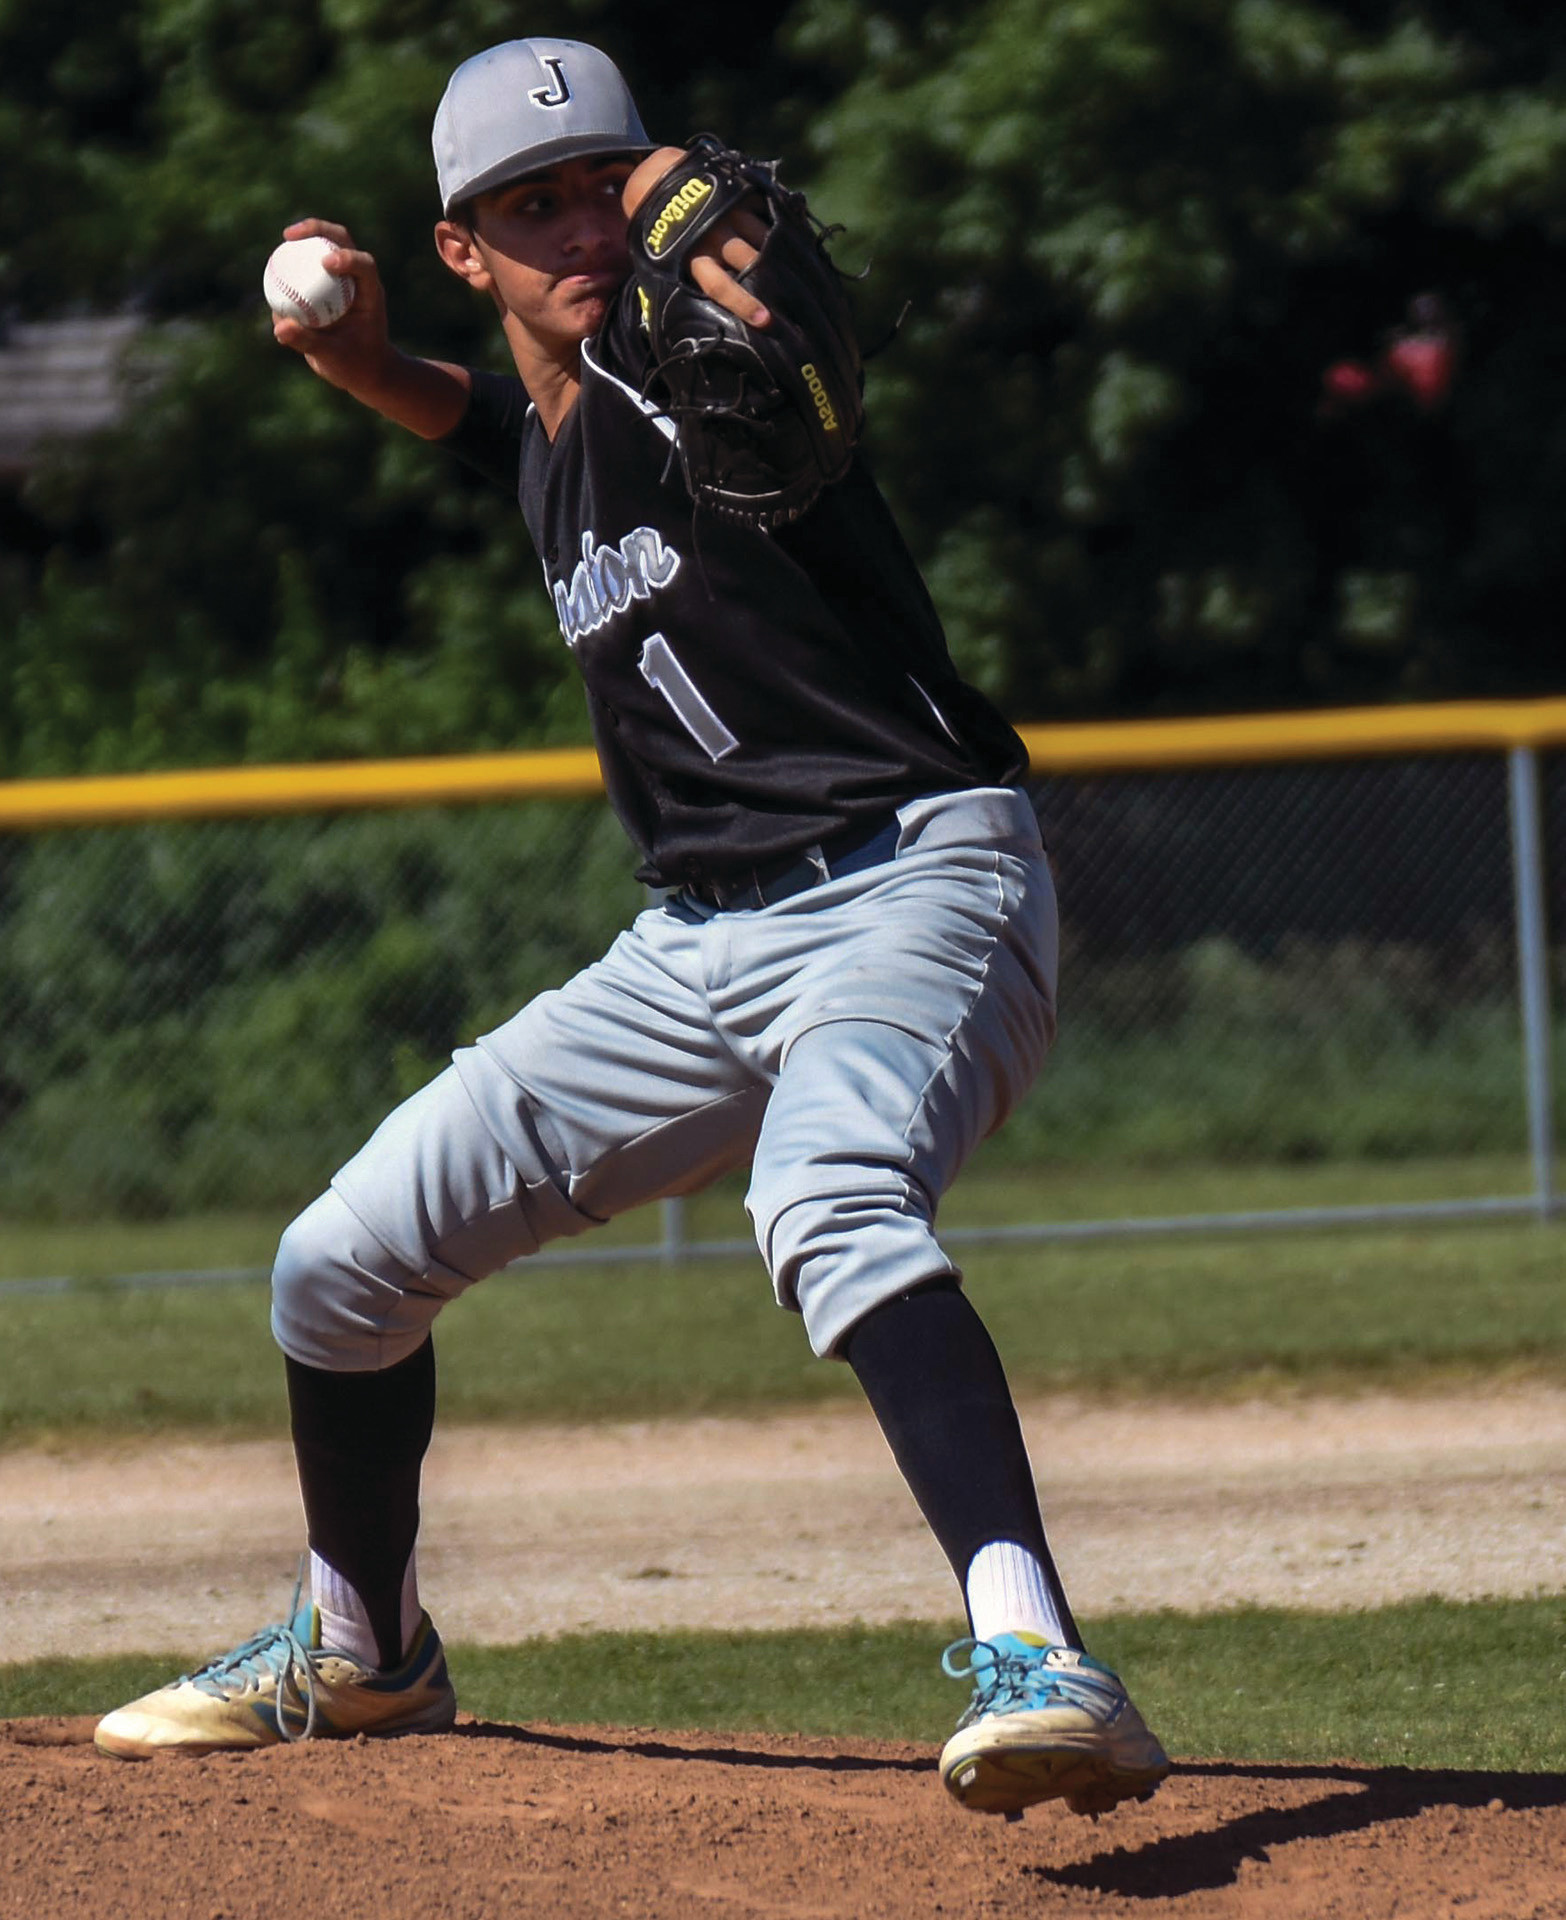 COMPLETE GAME: Bobby Civetti tossed all seven innings in a 7-6 Johnston victory over South Kingstown.